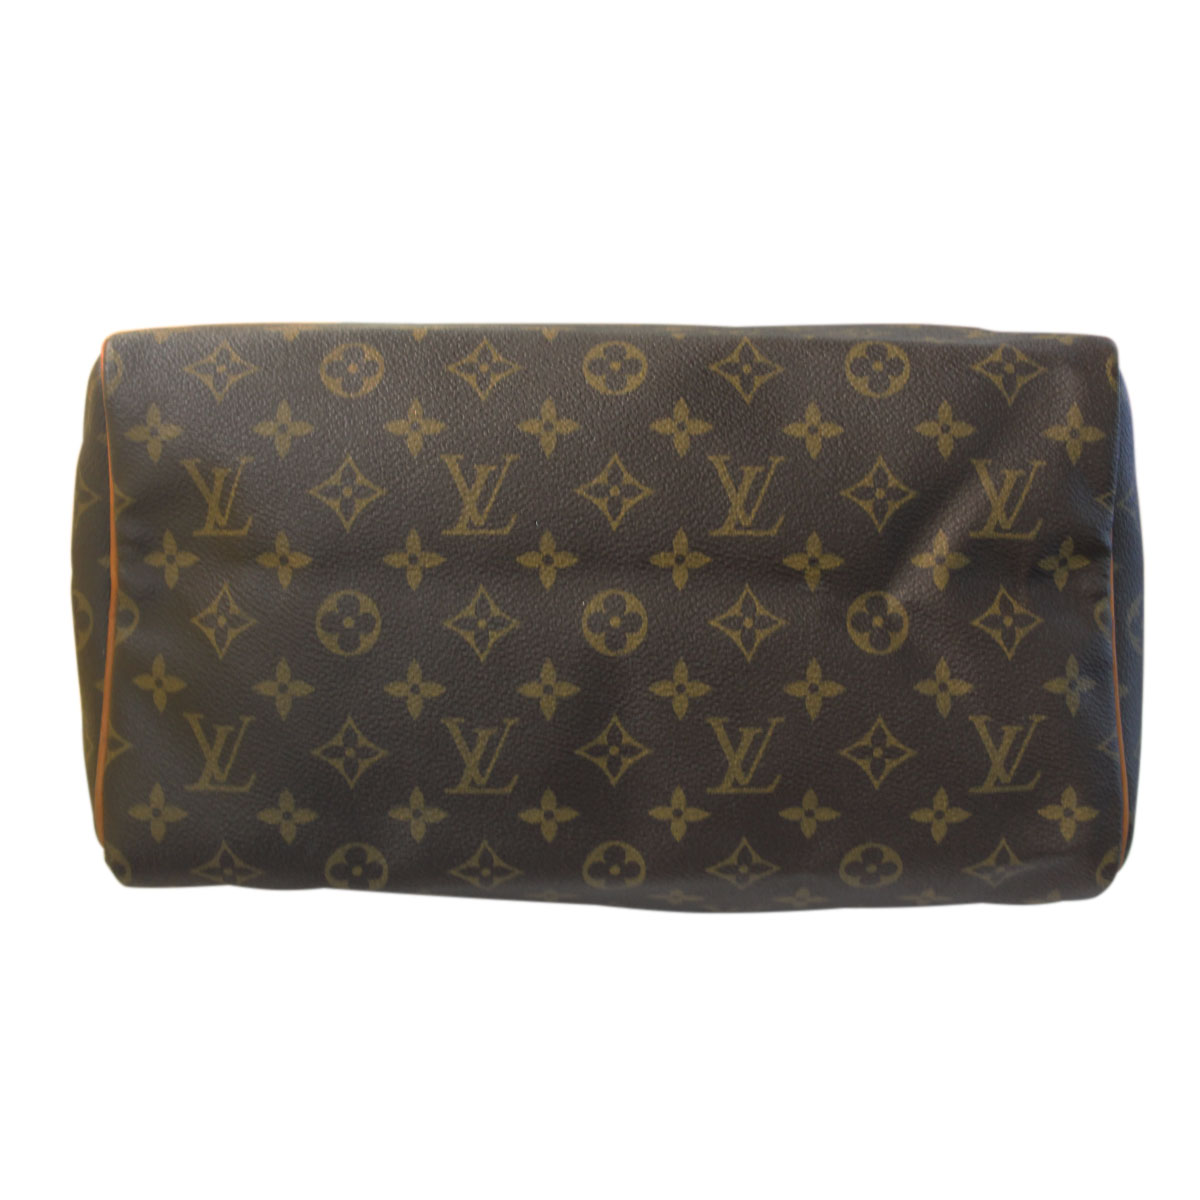 louis vuitton speedy 30 vintage french company handbag. Black Bedroom Furniture Sets. Home Design Ideas